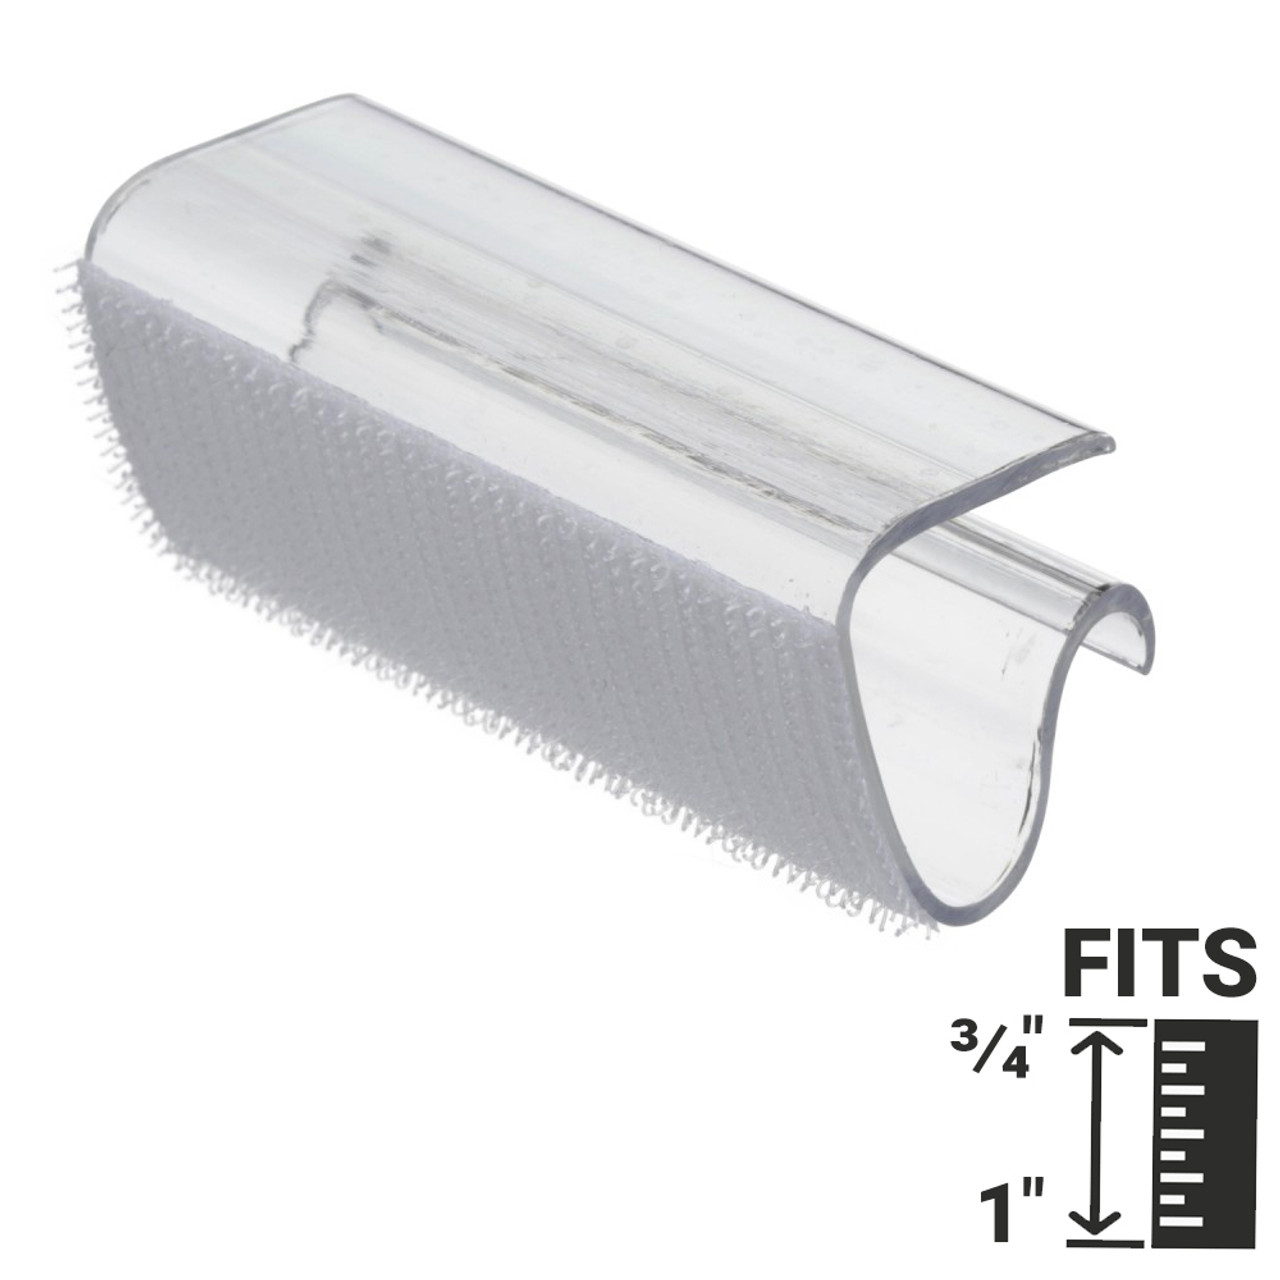 EZ Clip® Table Skirting Clips with VELCRO® Brand Hook